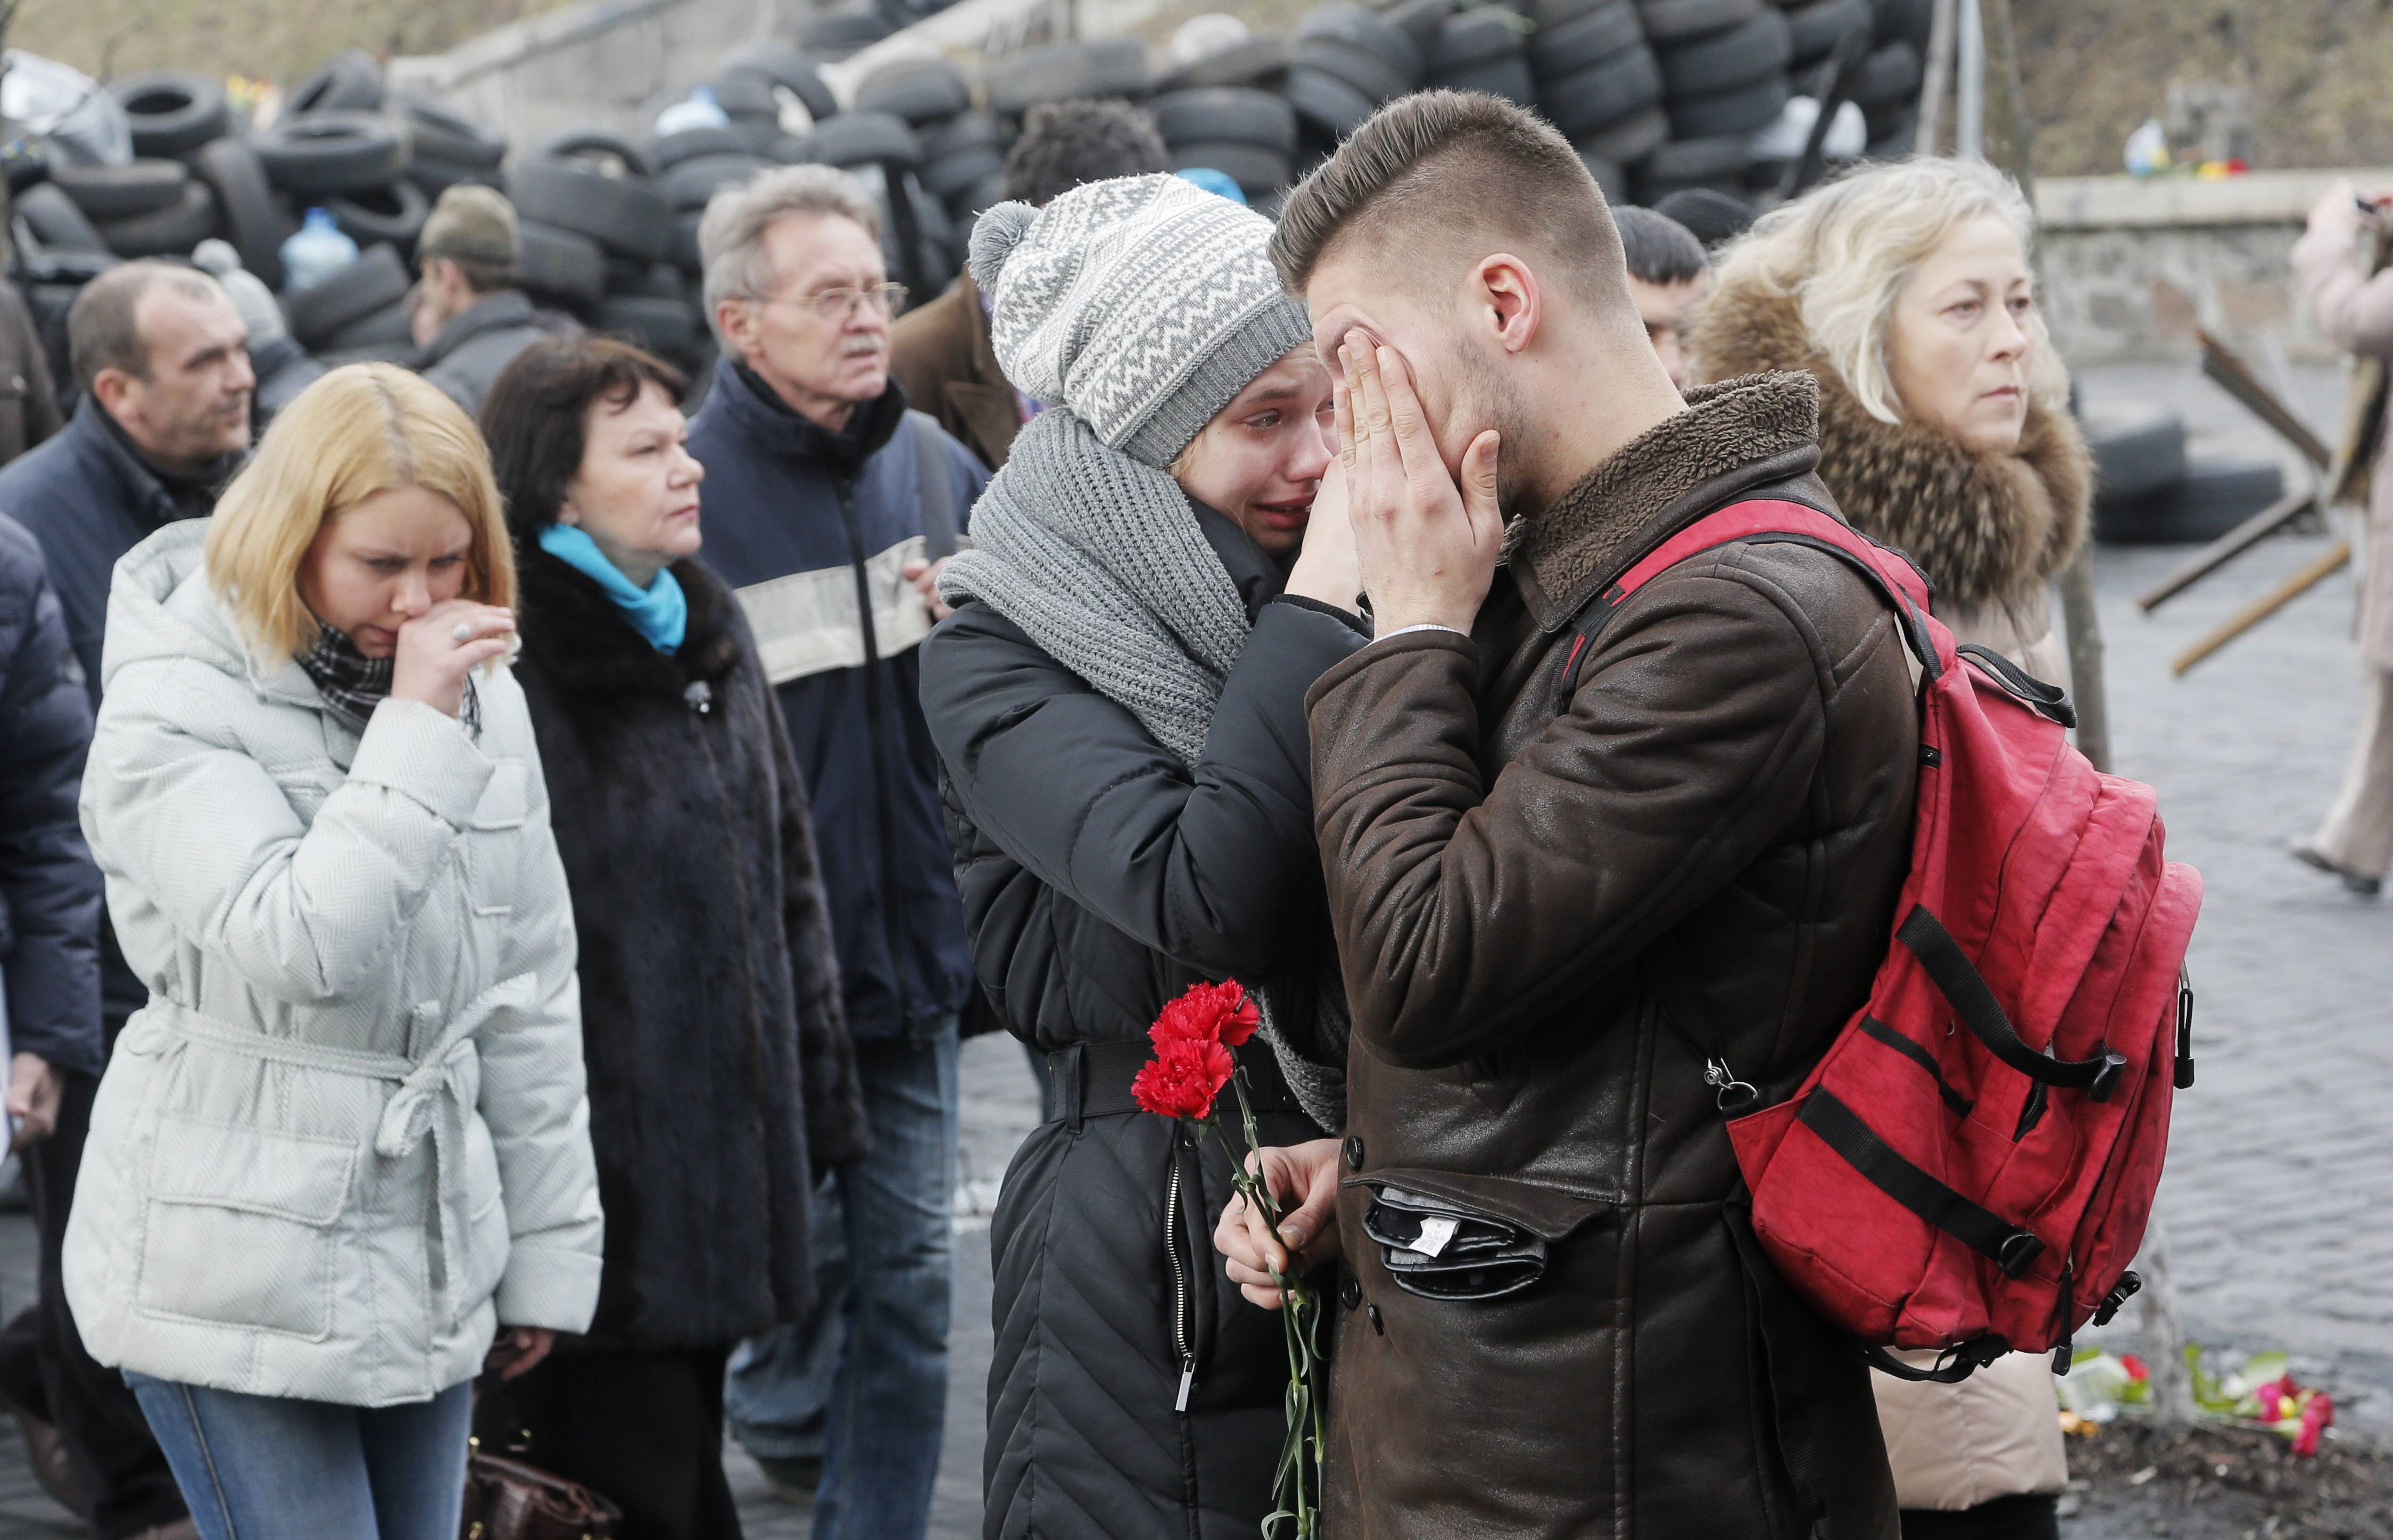 People cry as they pass by the site of recent deadly clashes between opposition protesters and riot police close to Kiev's Independence Square, Ukraine, Sunday. Official reports say 82 people were killed in the recent unrest.